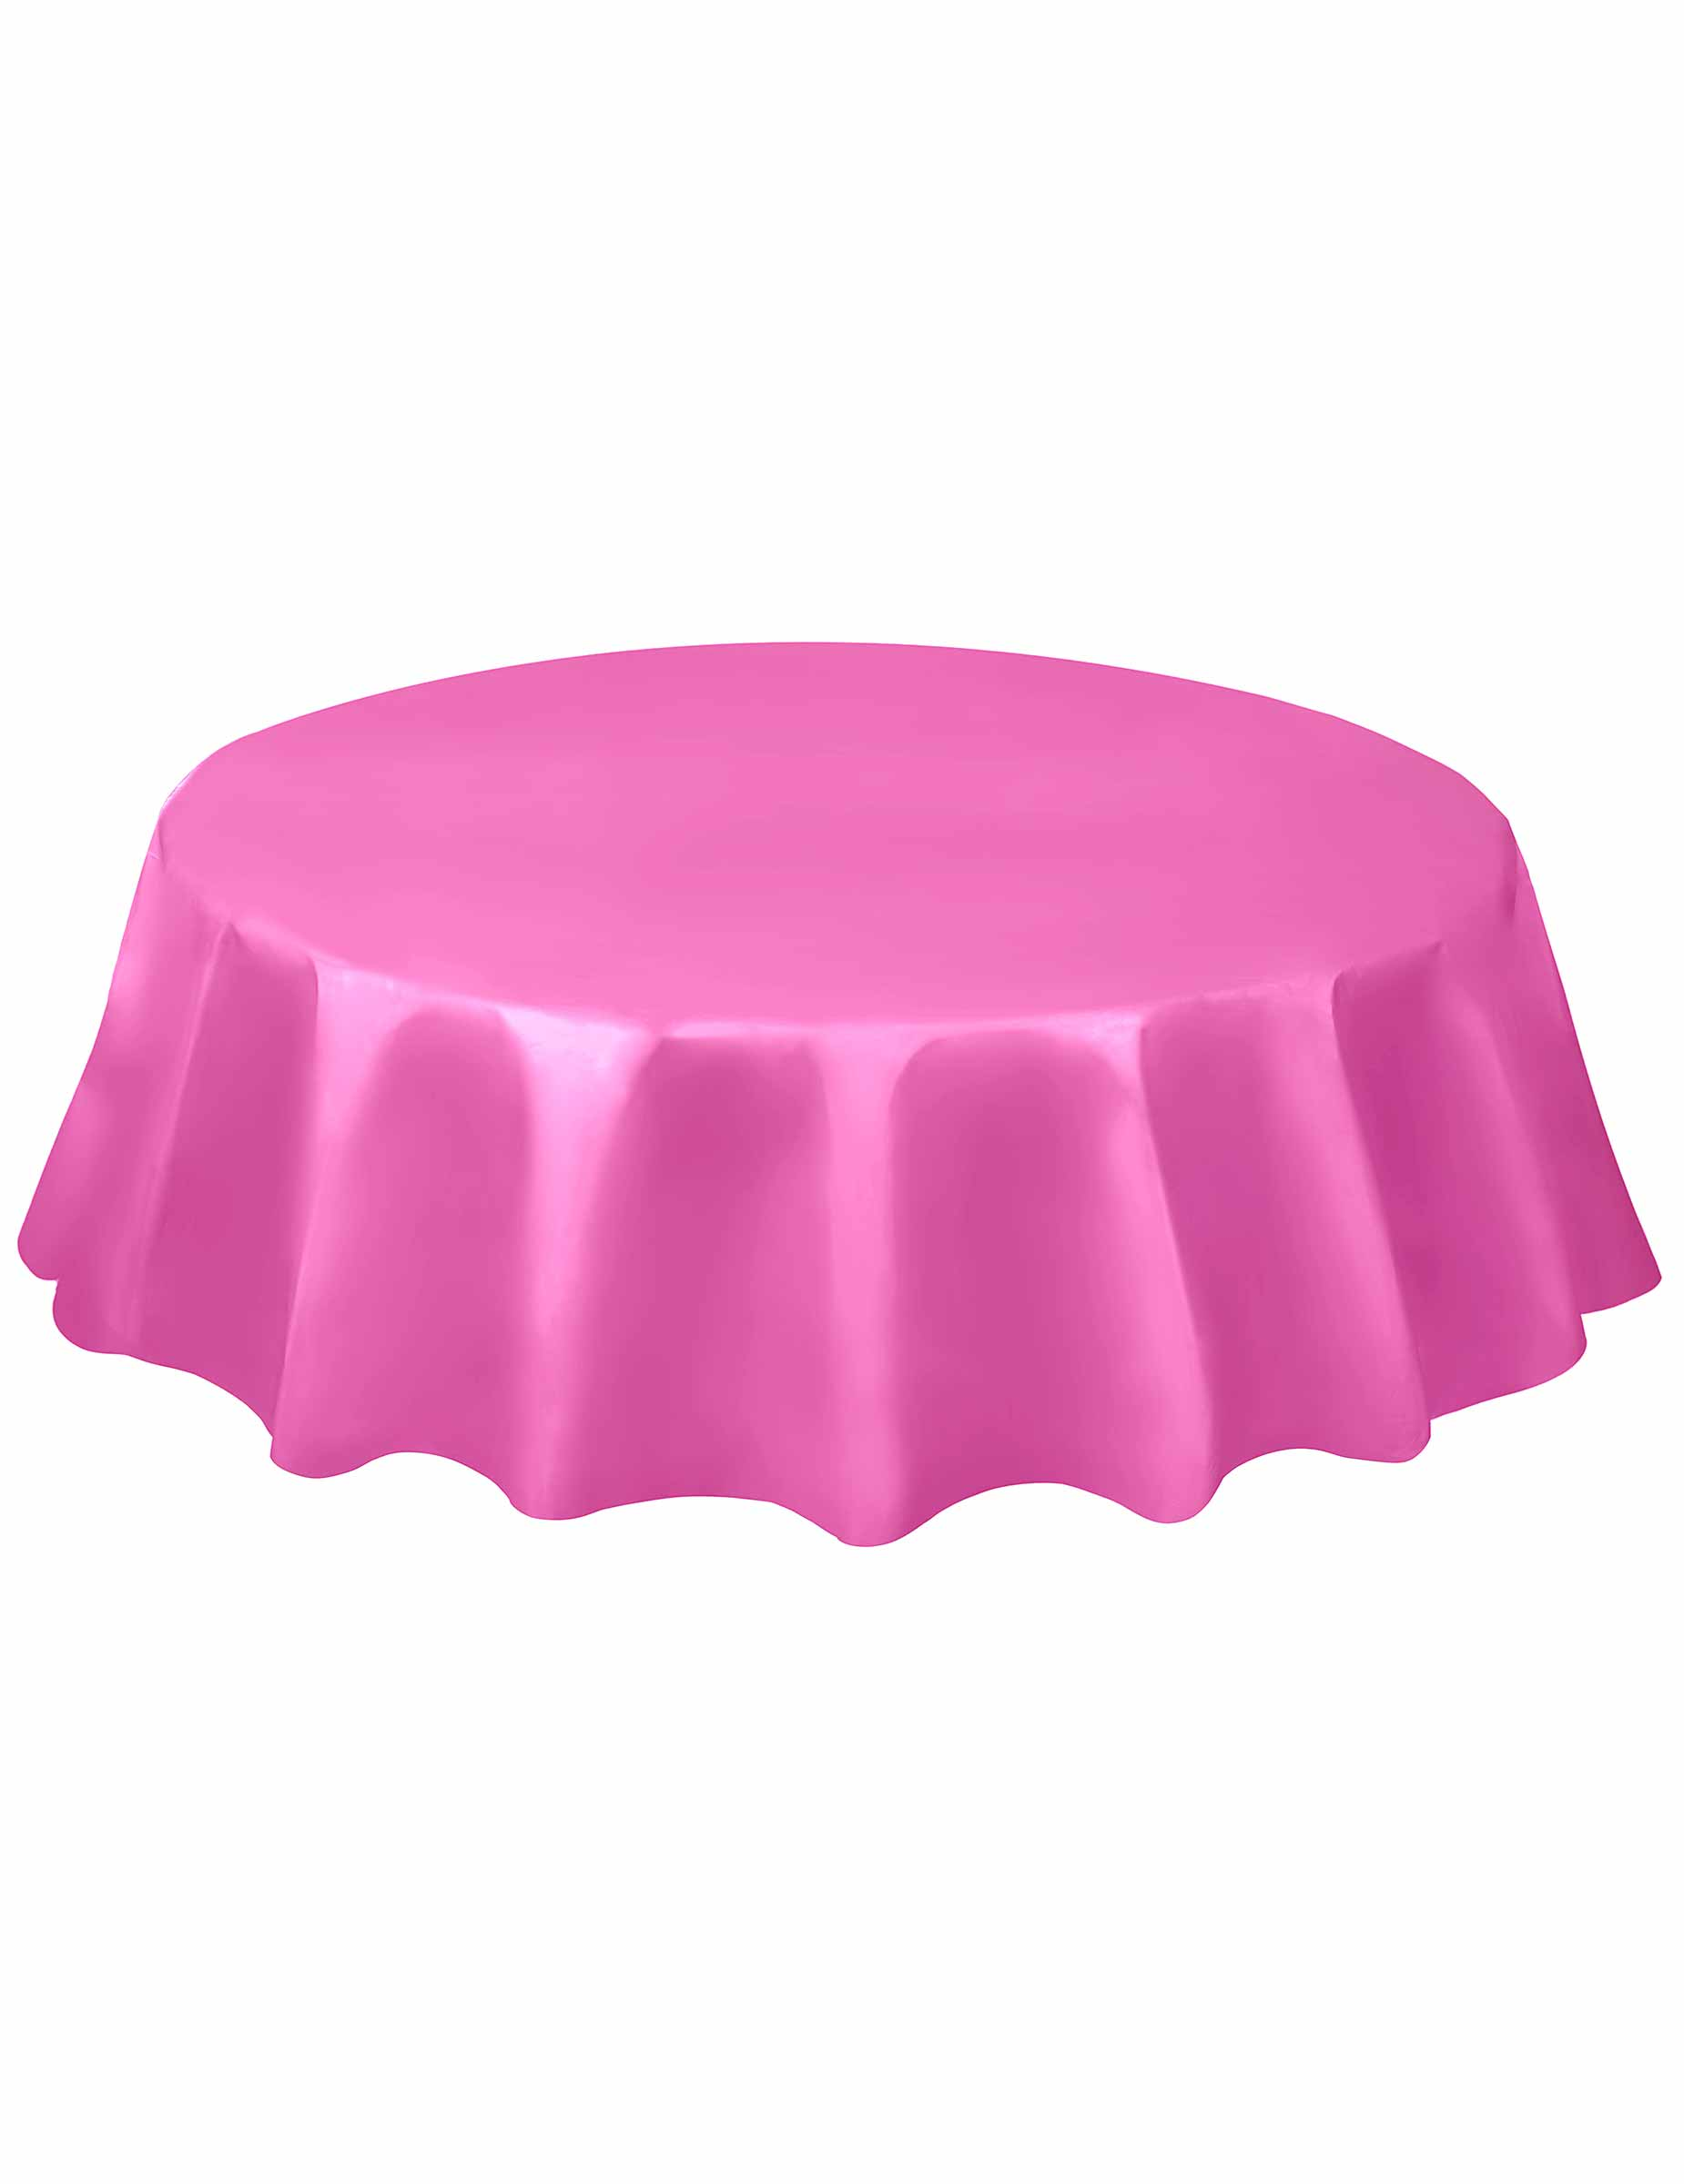 nappe ronde en plastique rose 213 cm d coration anniversaire et f tes th me sur vegaoo party. Black Bedroom Furniture Sets. Home Design Ideas